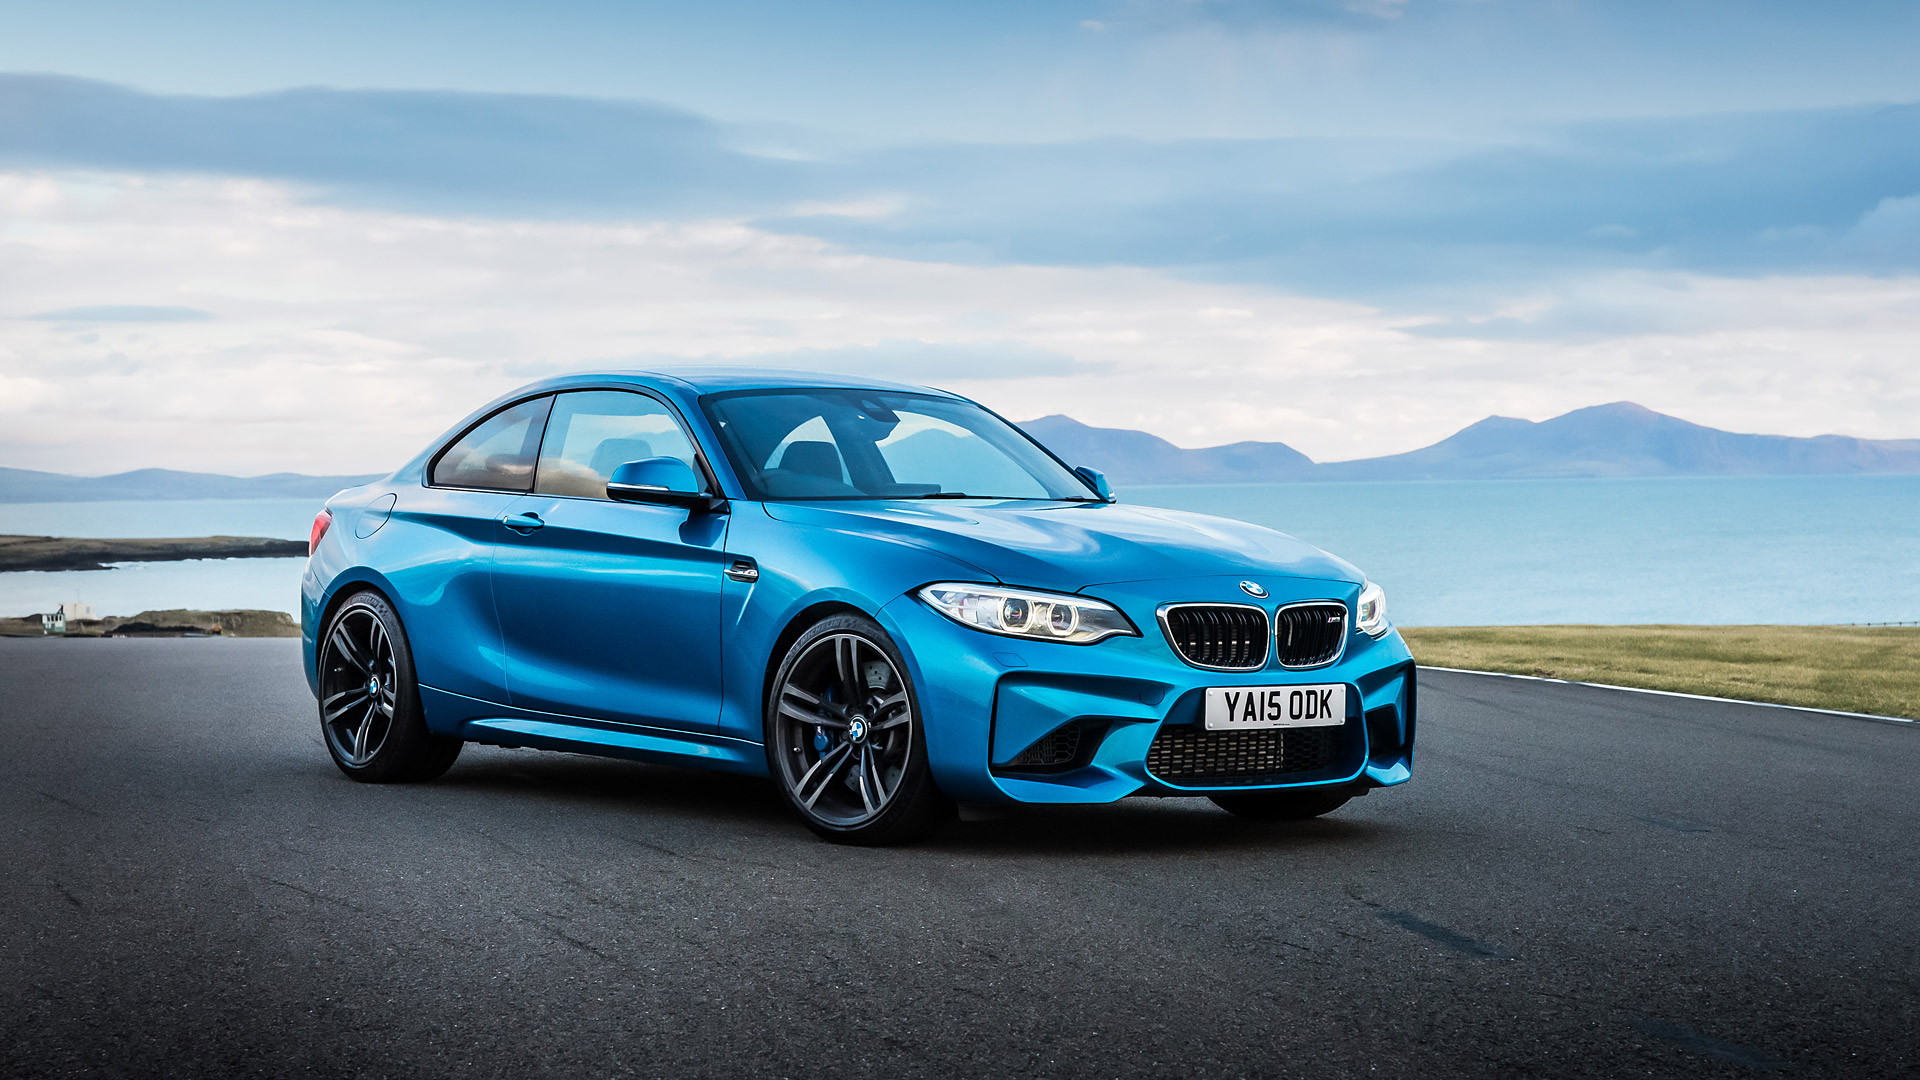 1920x1080 - BMW M2 Coupe Wallpapers 21